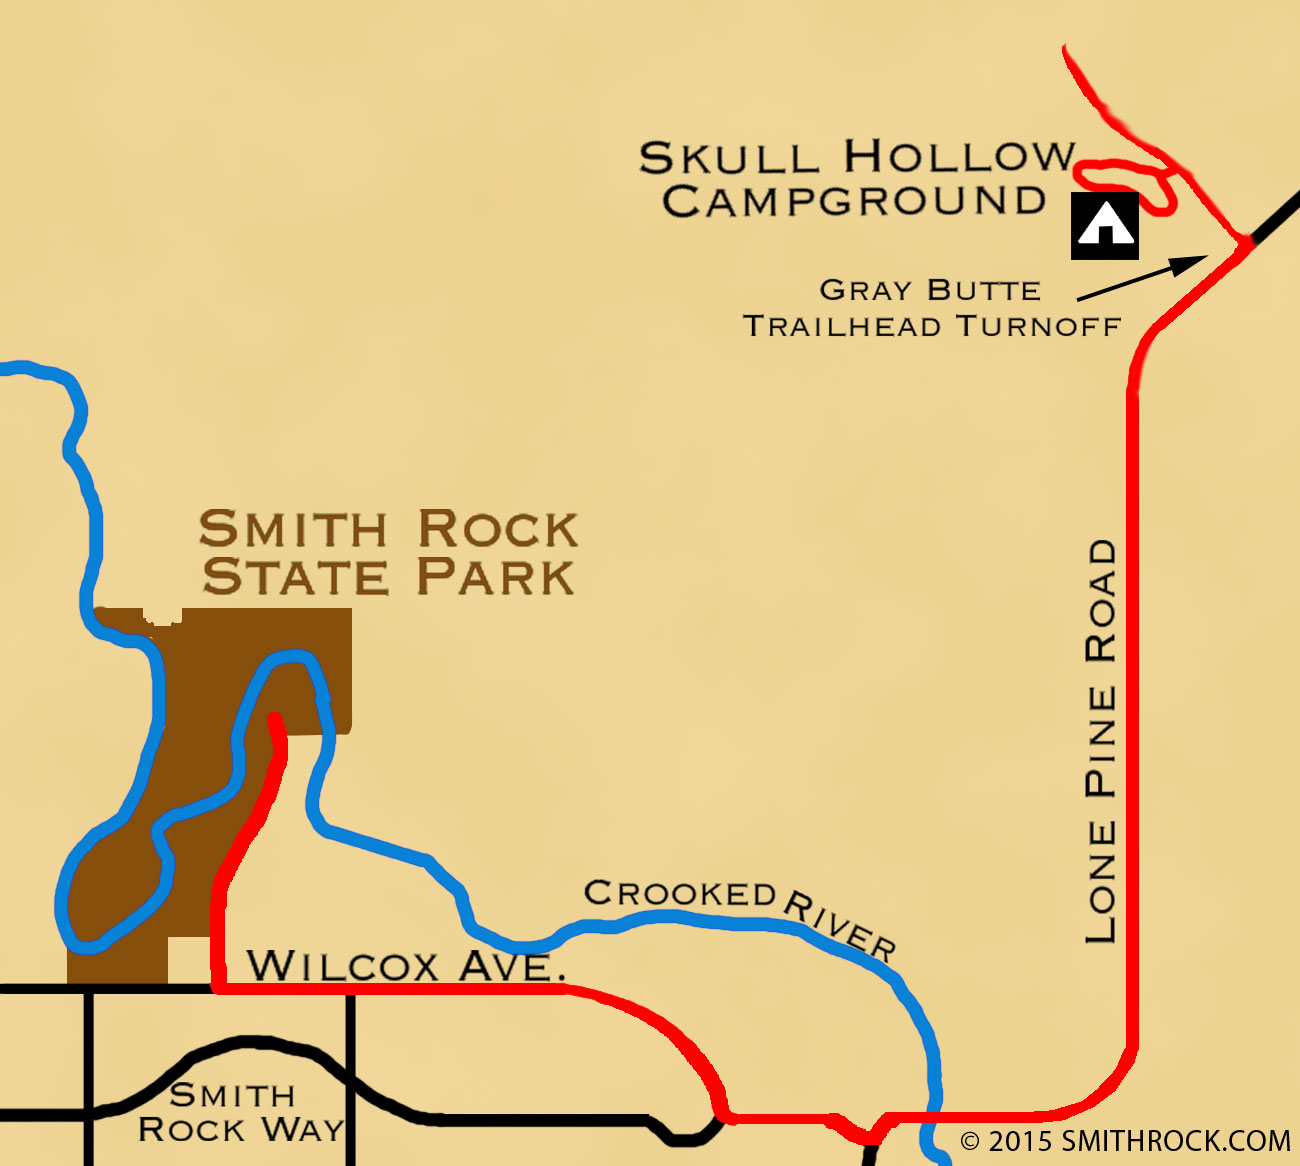 Skull Hollow Campground Map from Smith Rock State Park- click to enlarge